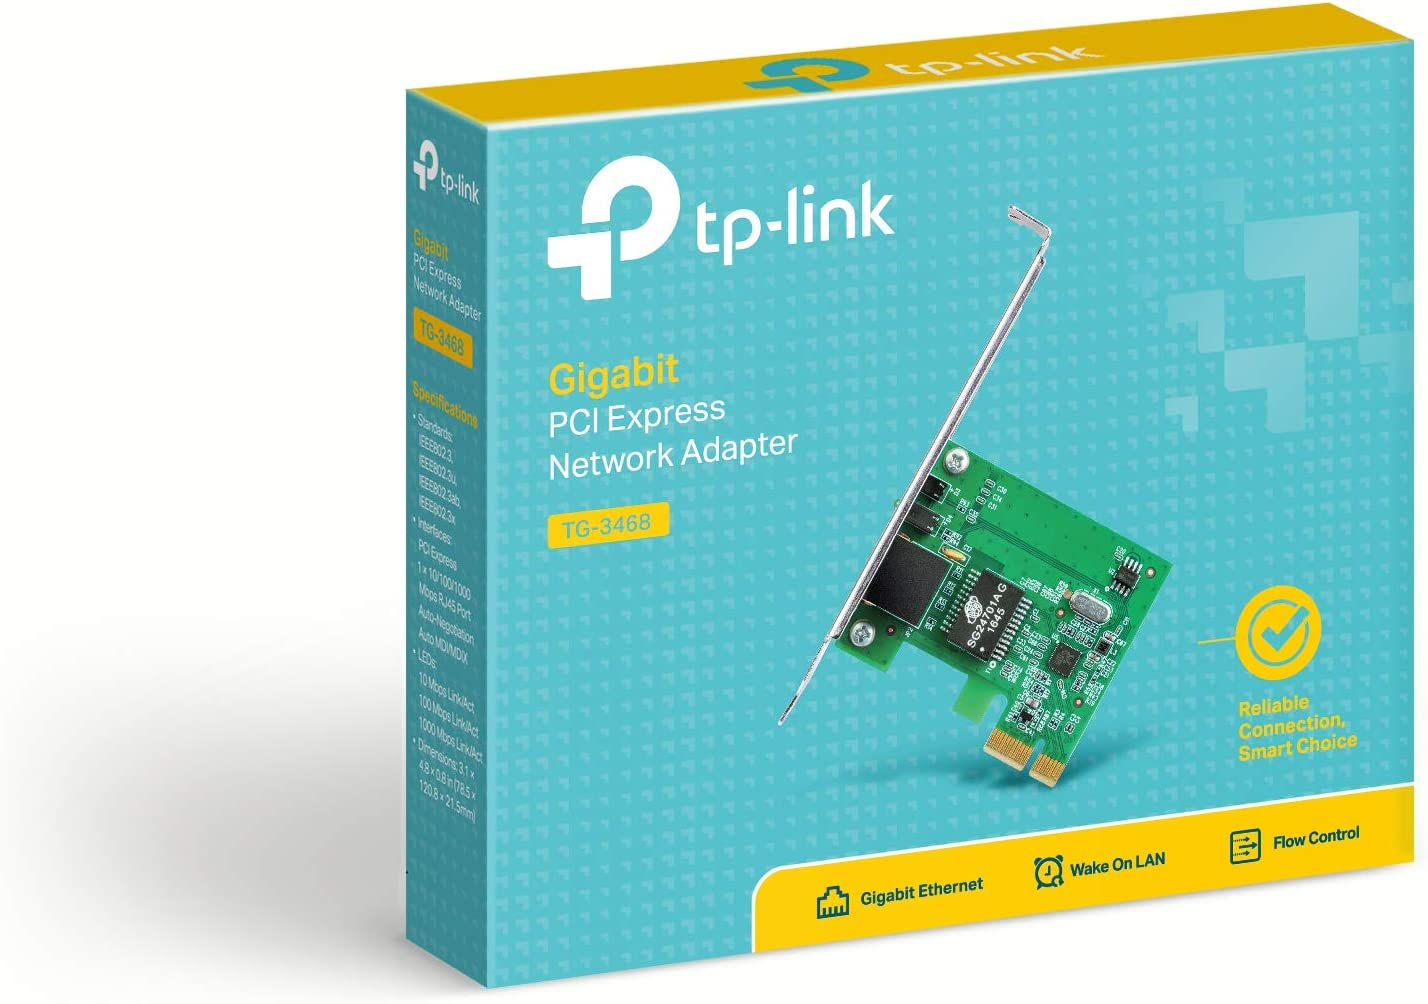 TP-Link 10/100/1000Mbps Gigabit Ethernet PCI Express, PCIE Network Adapter / Network Card / Ethernet Card for PC, Win10 supported (TG-3468)